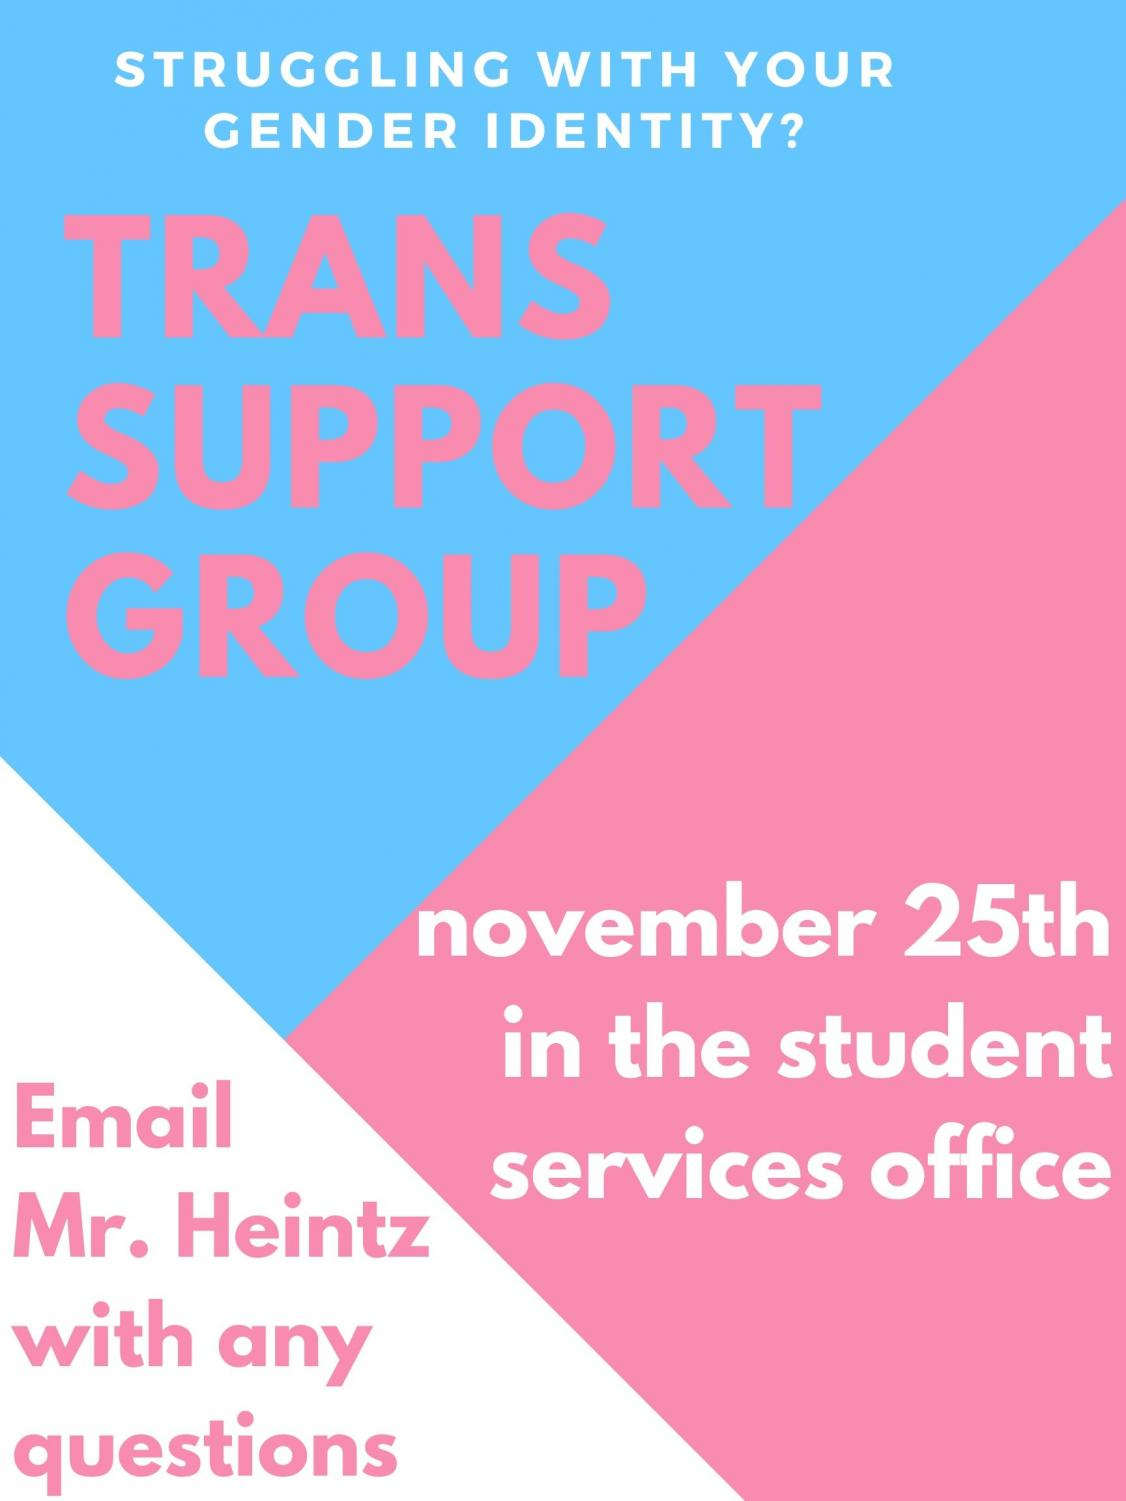 The transgender support group has flyers all across ACHS that will provide the information shown above and more.